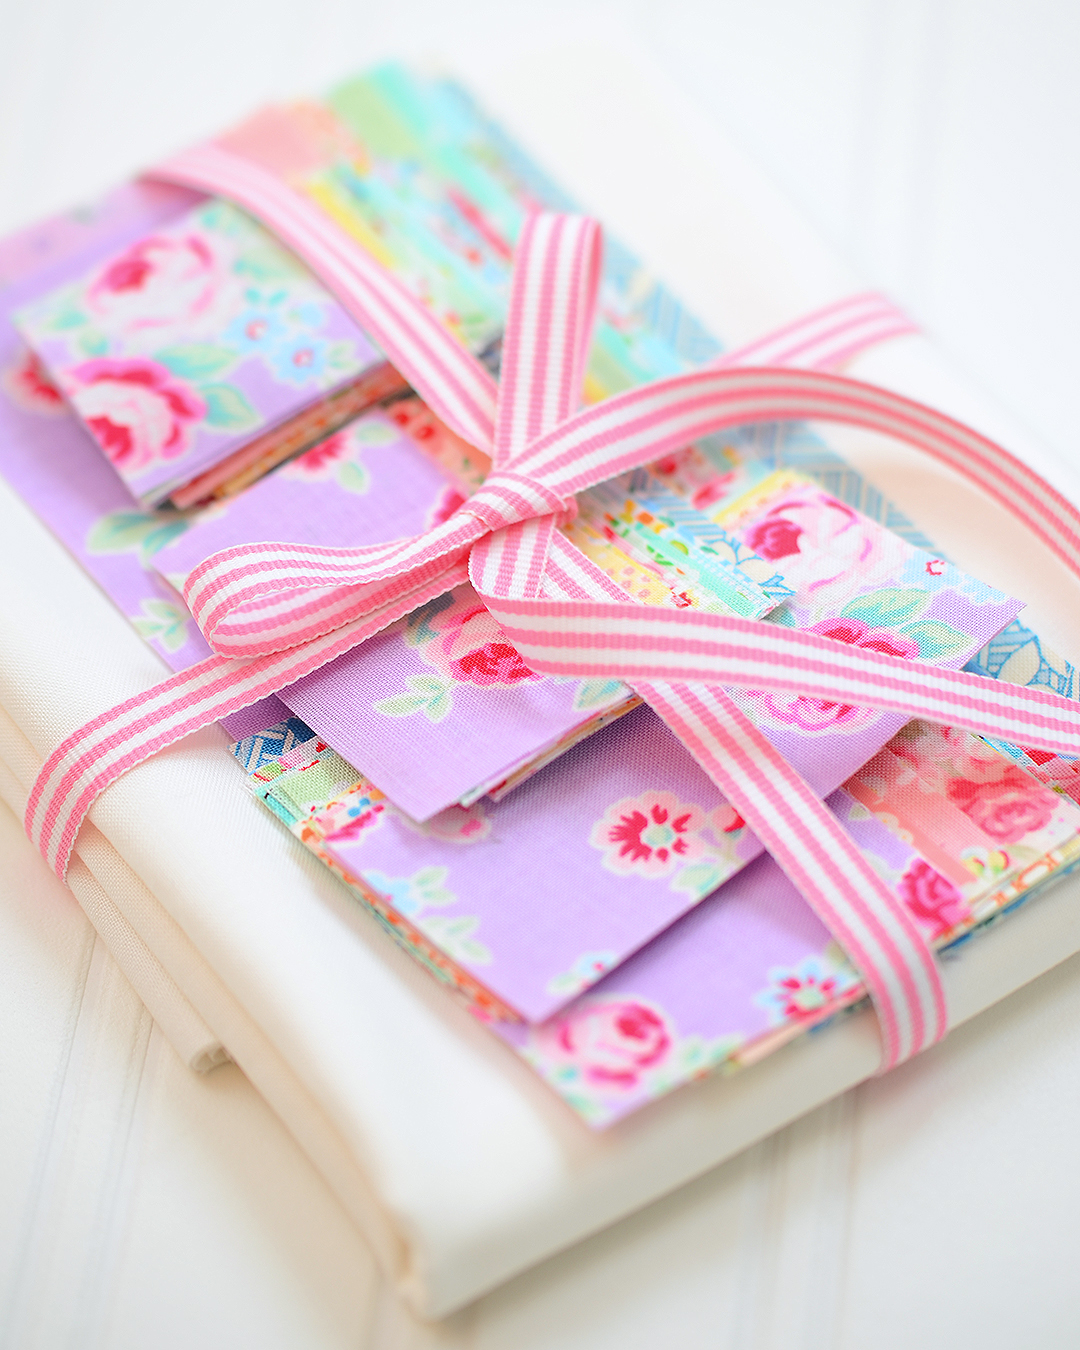 Spring Meadow Mini Quilt Kit